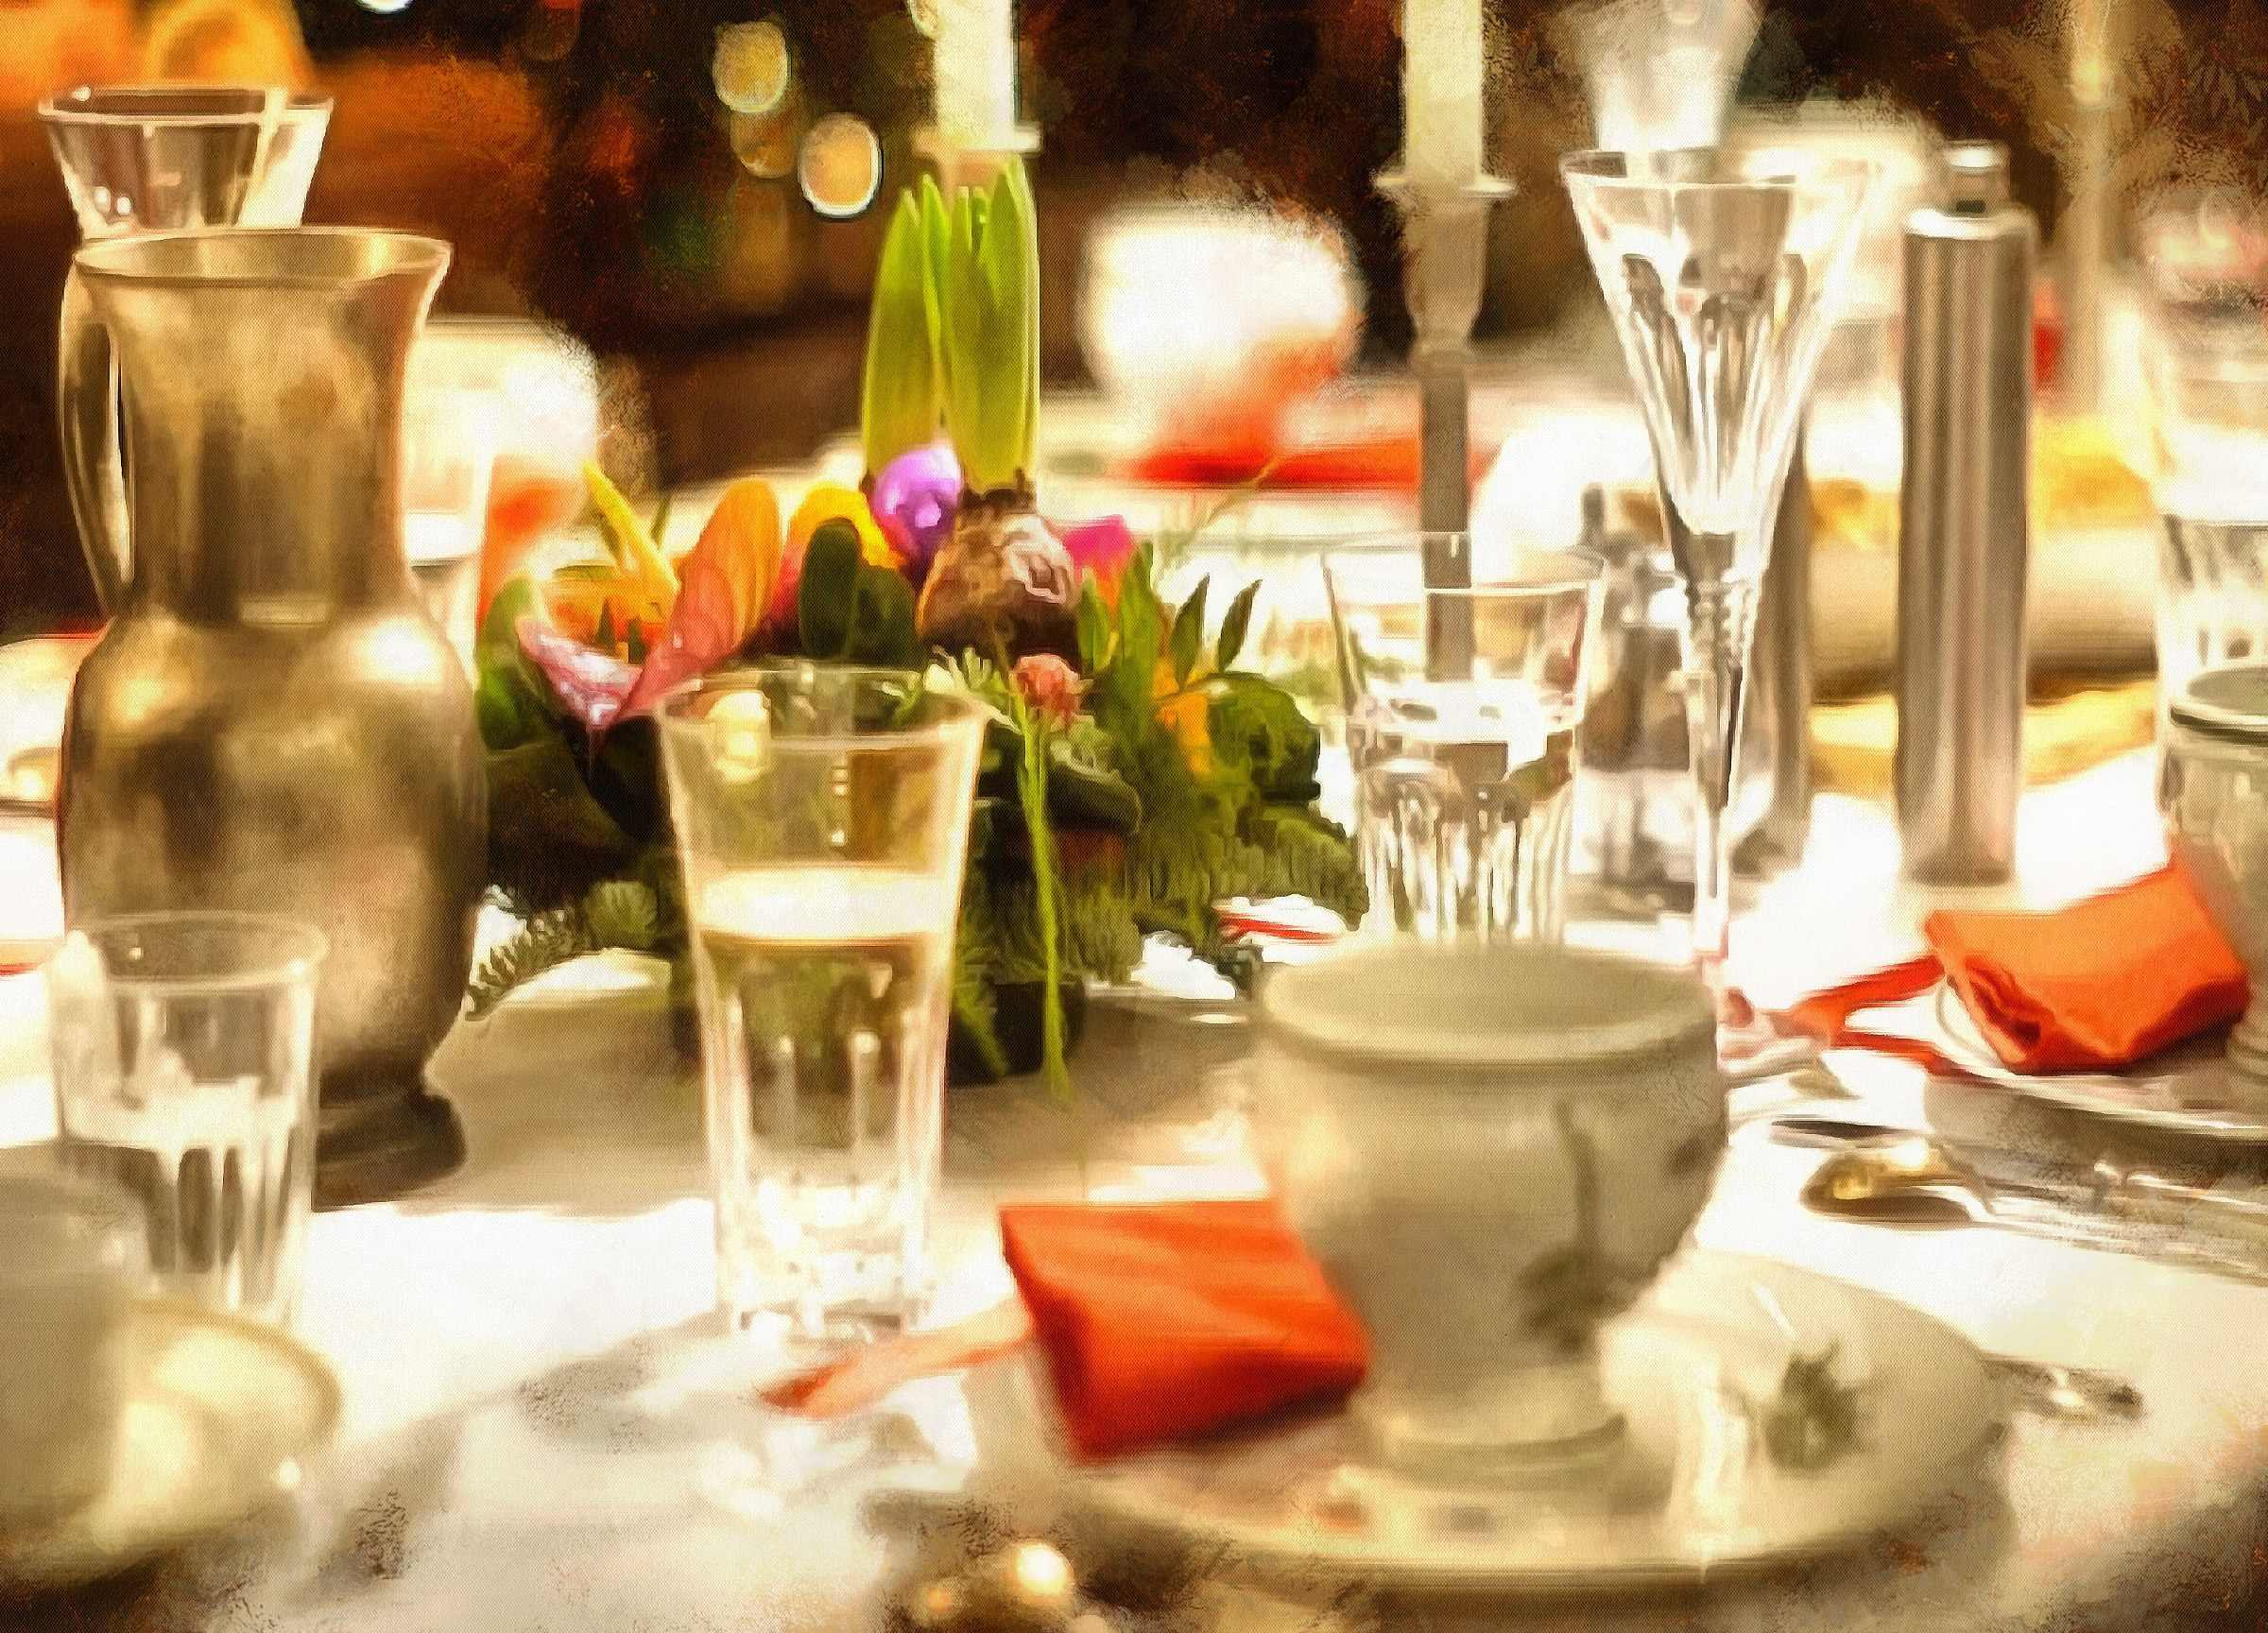 <br>table, meal, dishes, glasses, tablecloths,